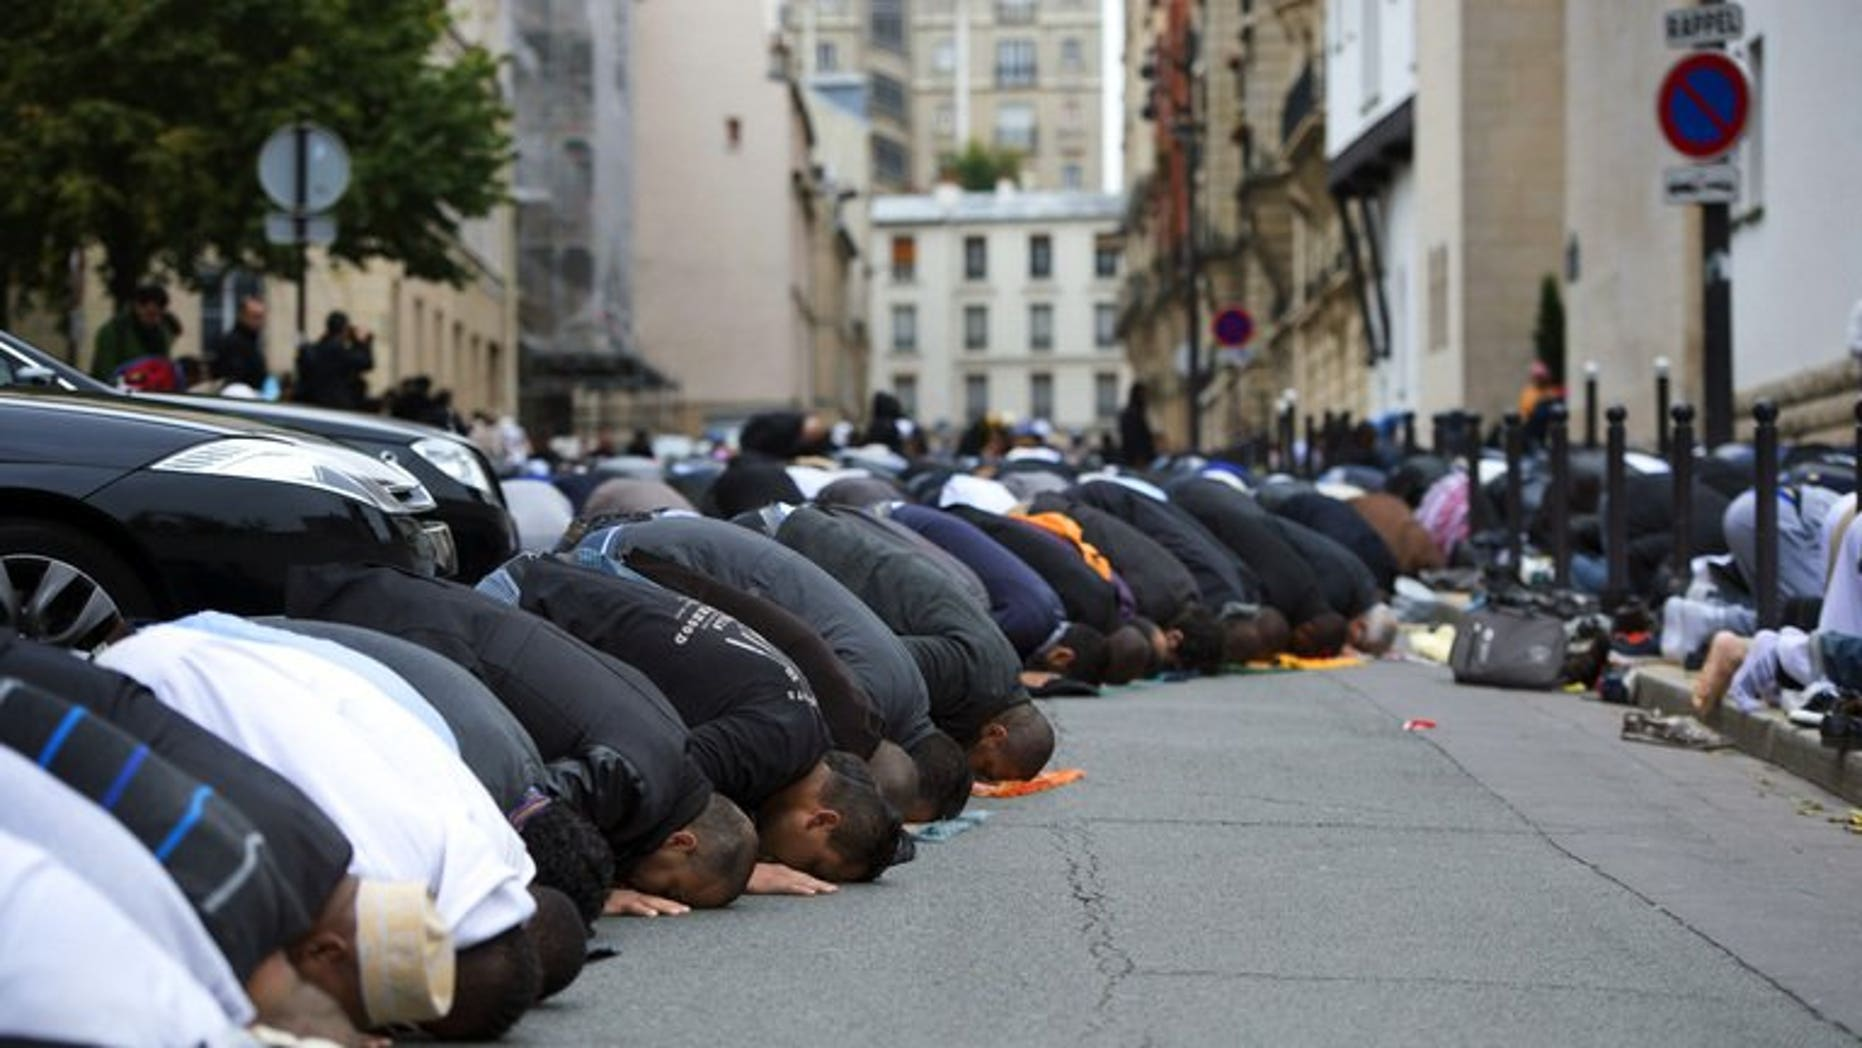 Muslims pray outside the Grande Mosque of Paris on the first day of Eid al-Adha on October 26, 2012.